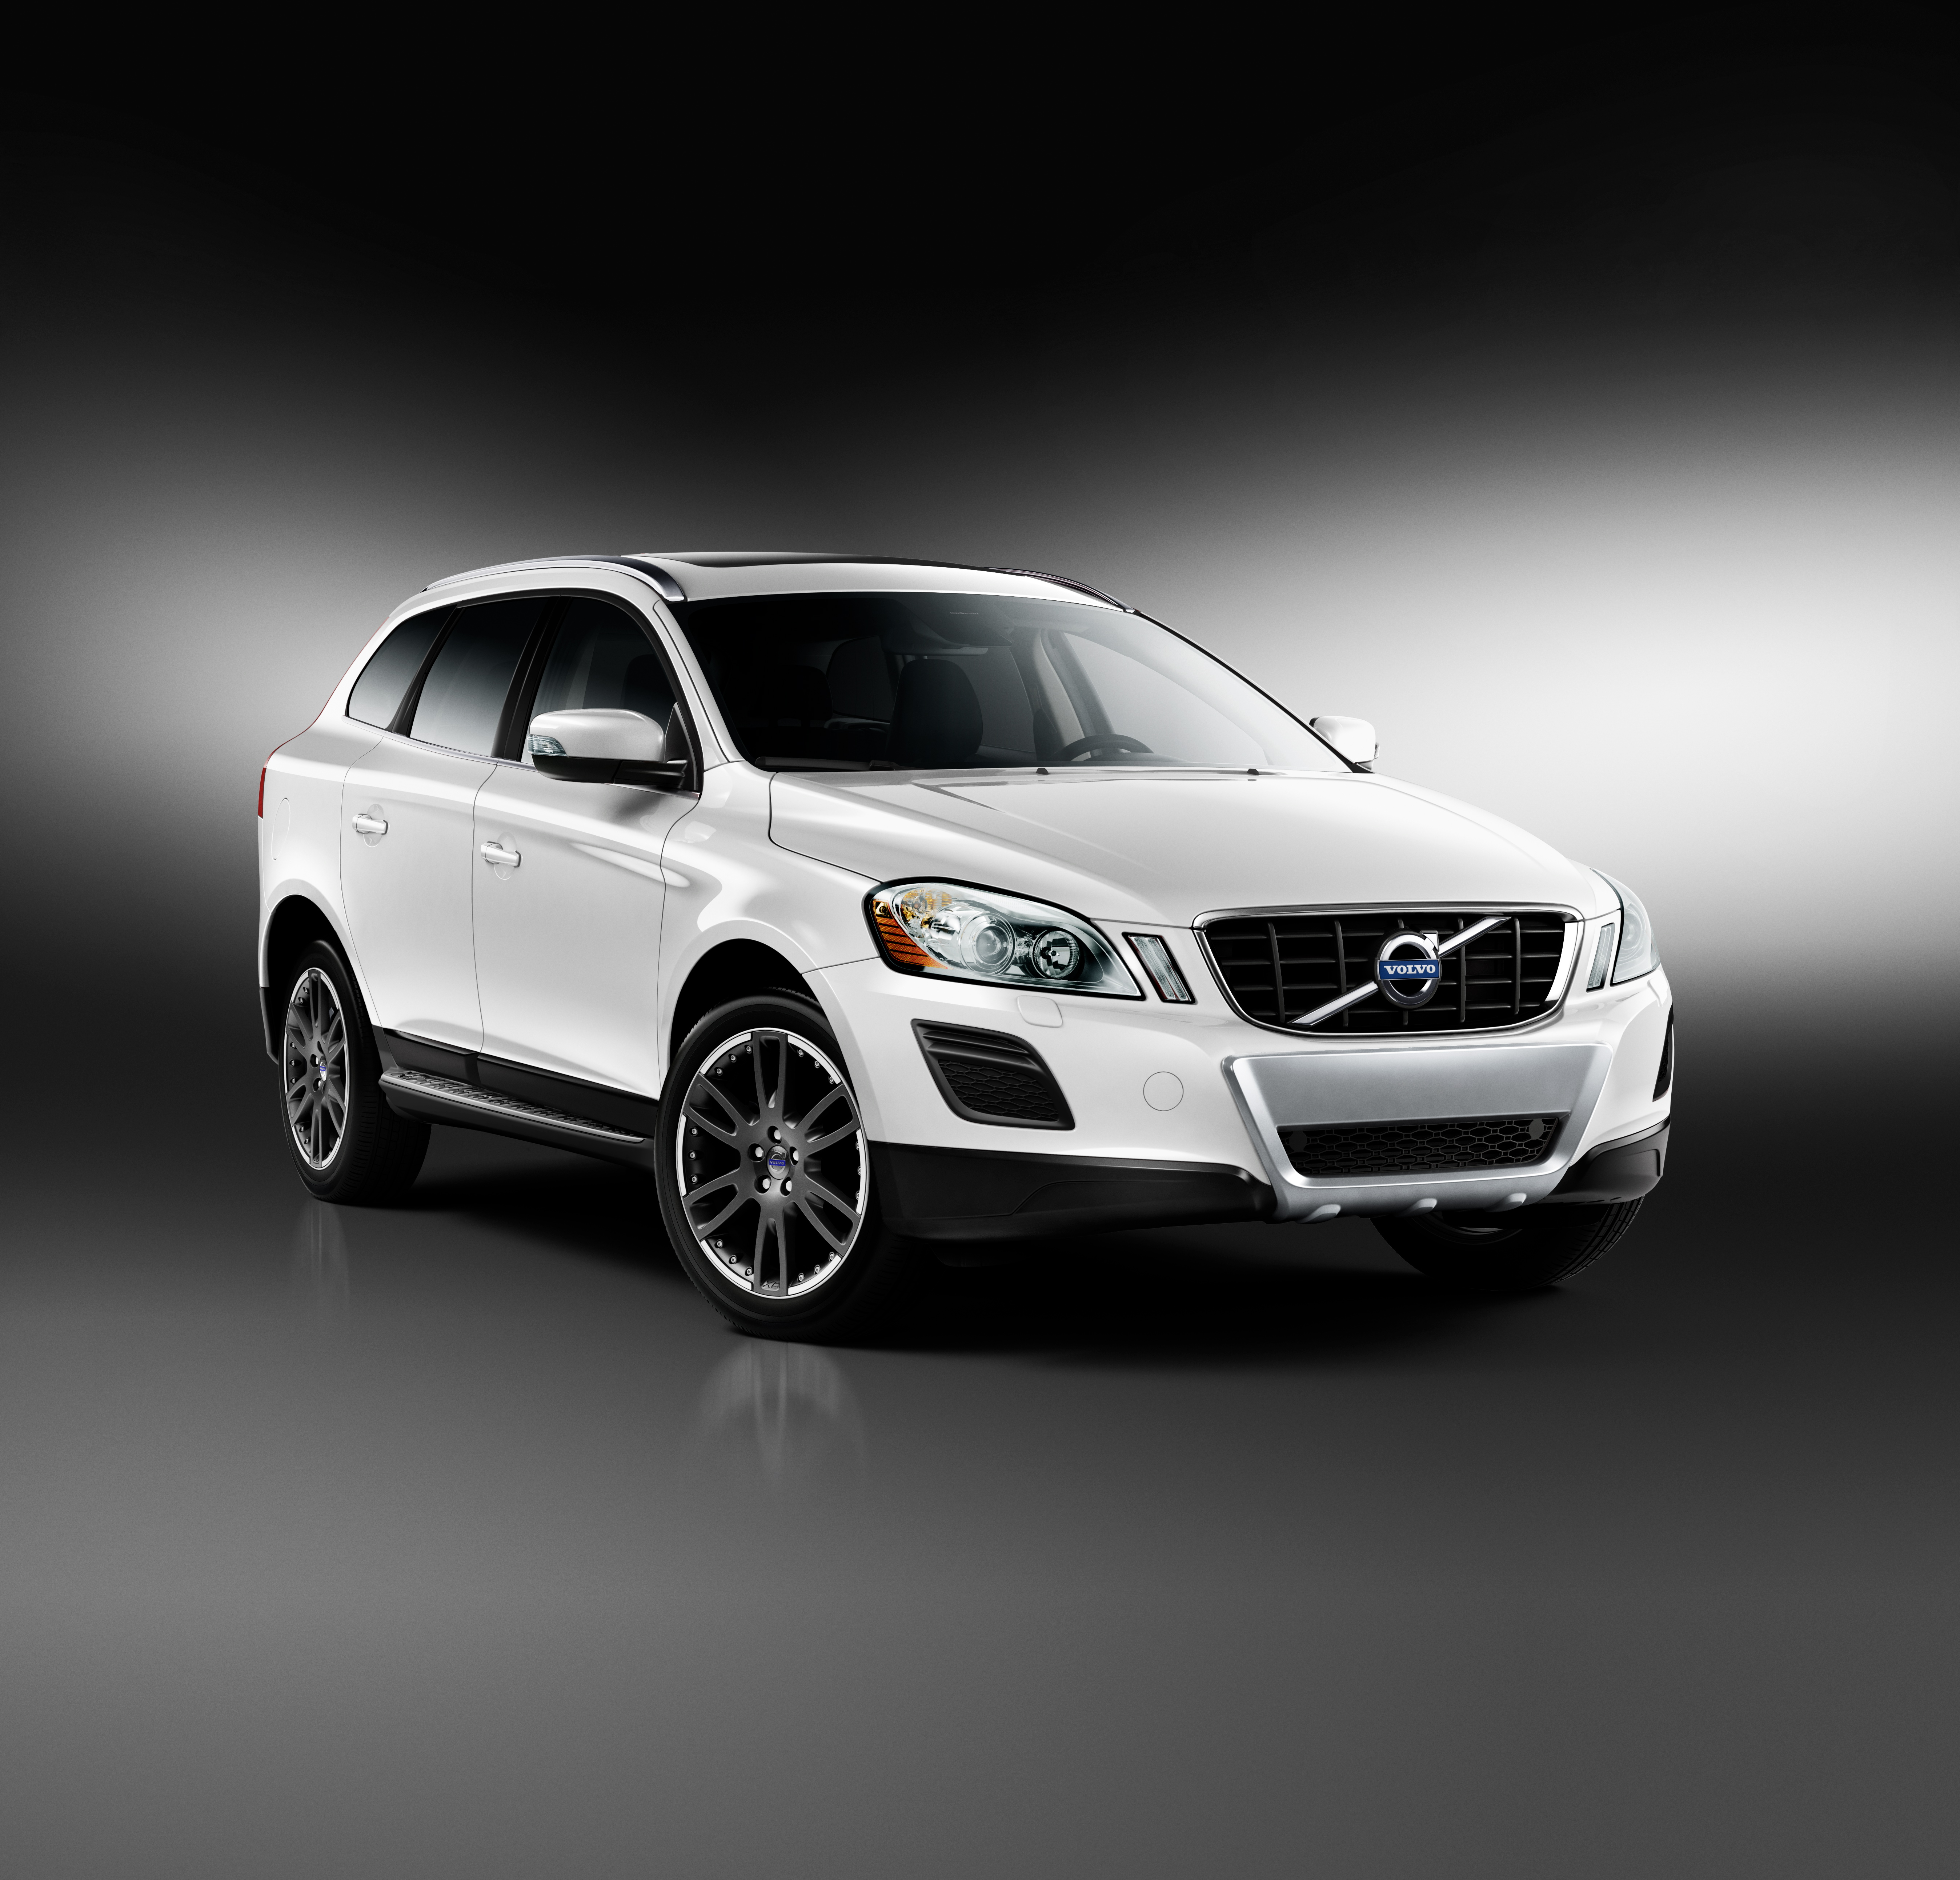 Volvo Sc 60: Charitybuzz: Own This Brand New 2013 Volvo XC60 And